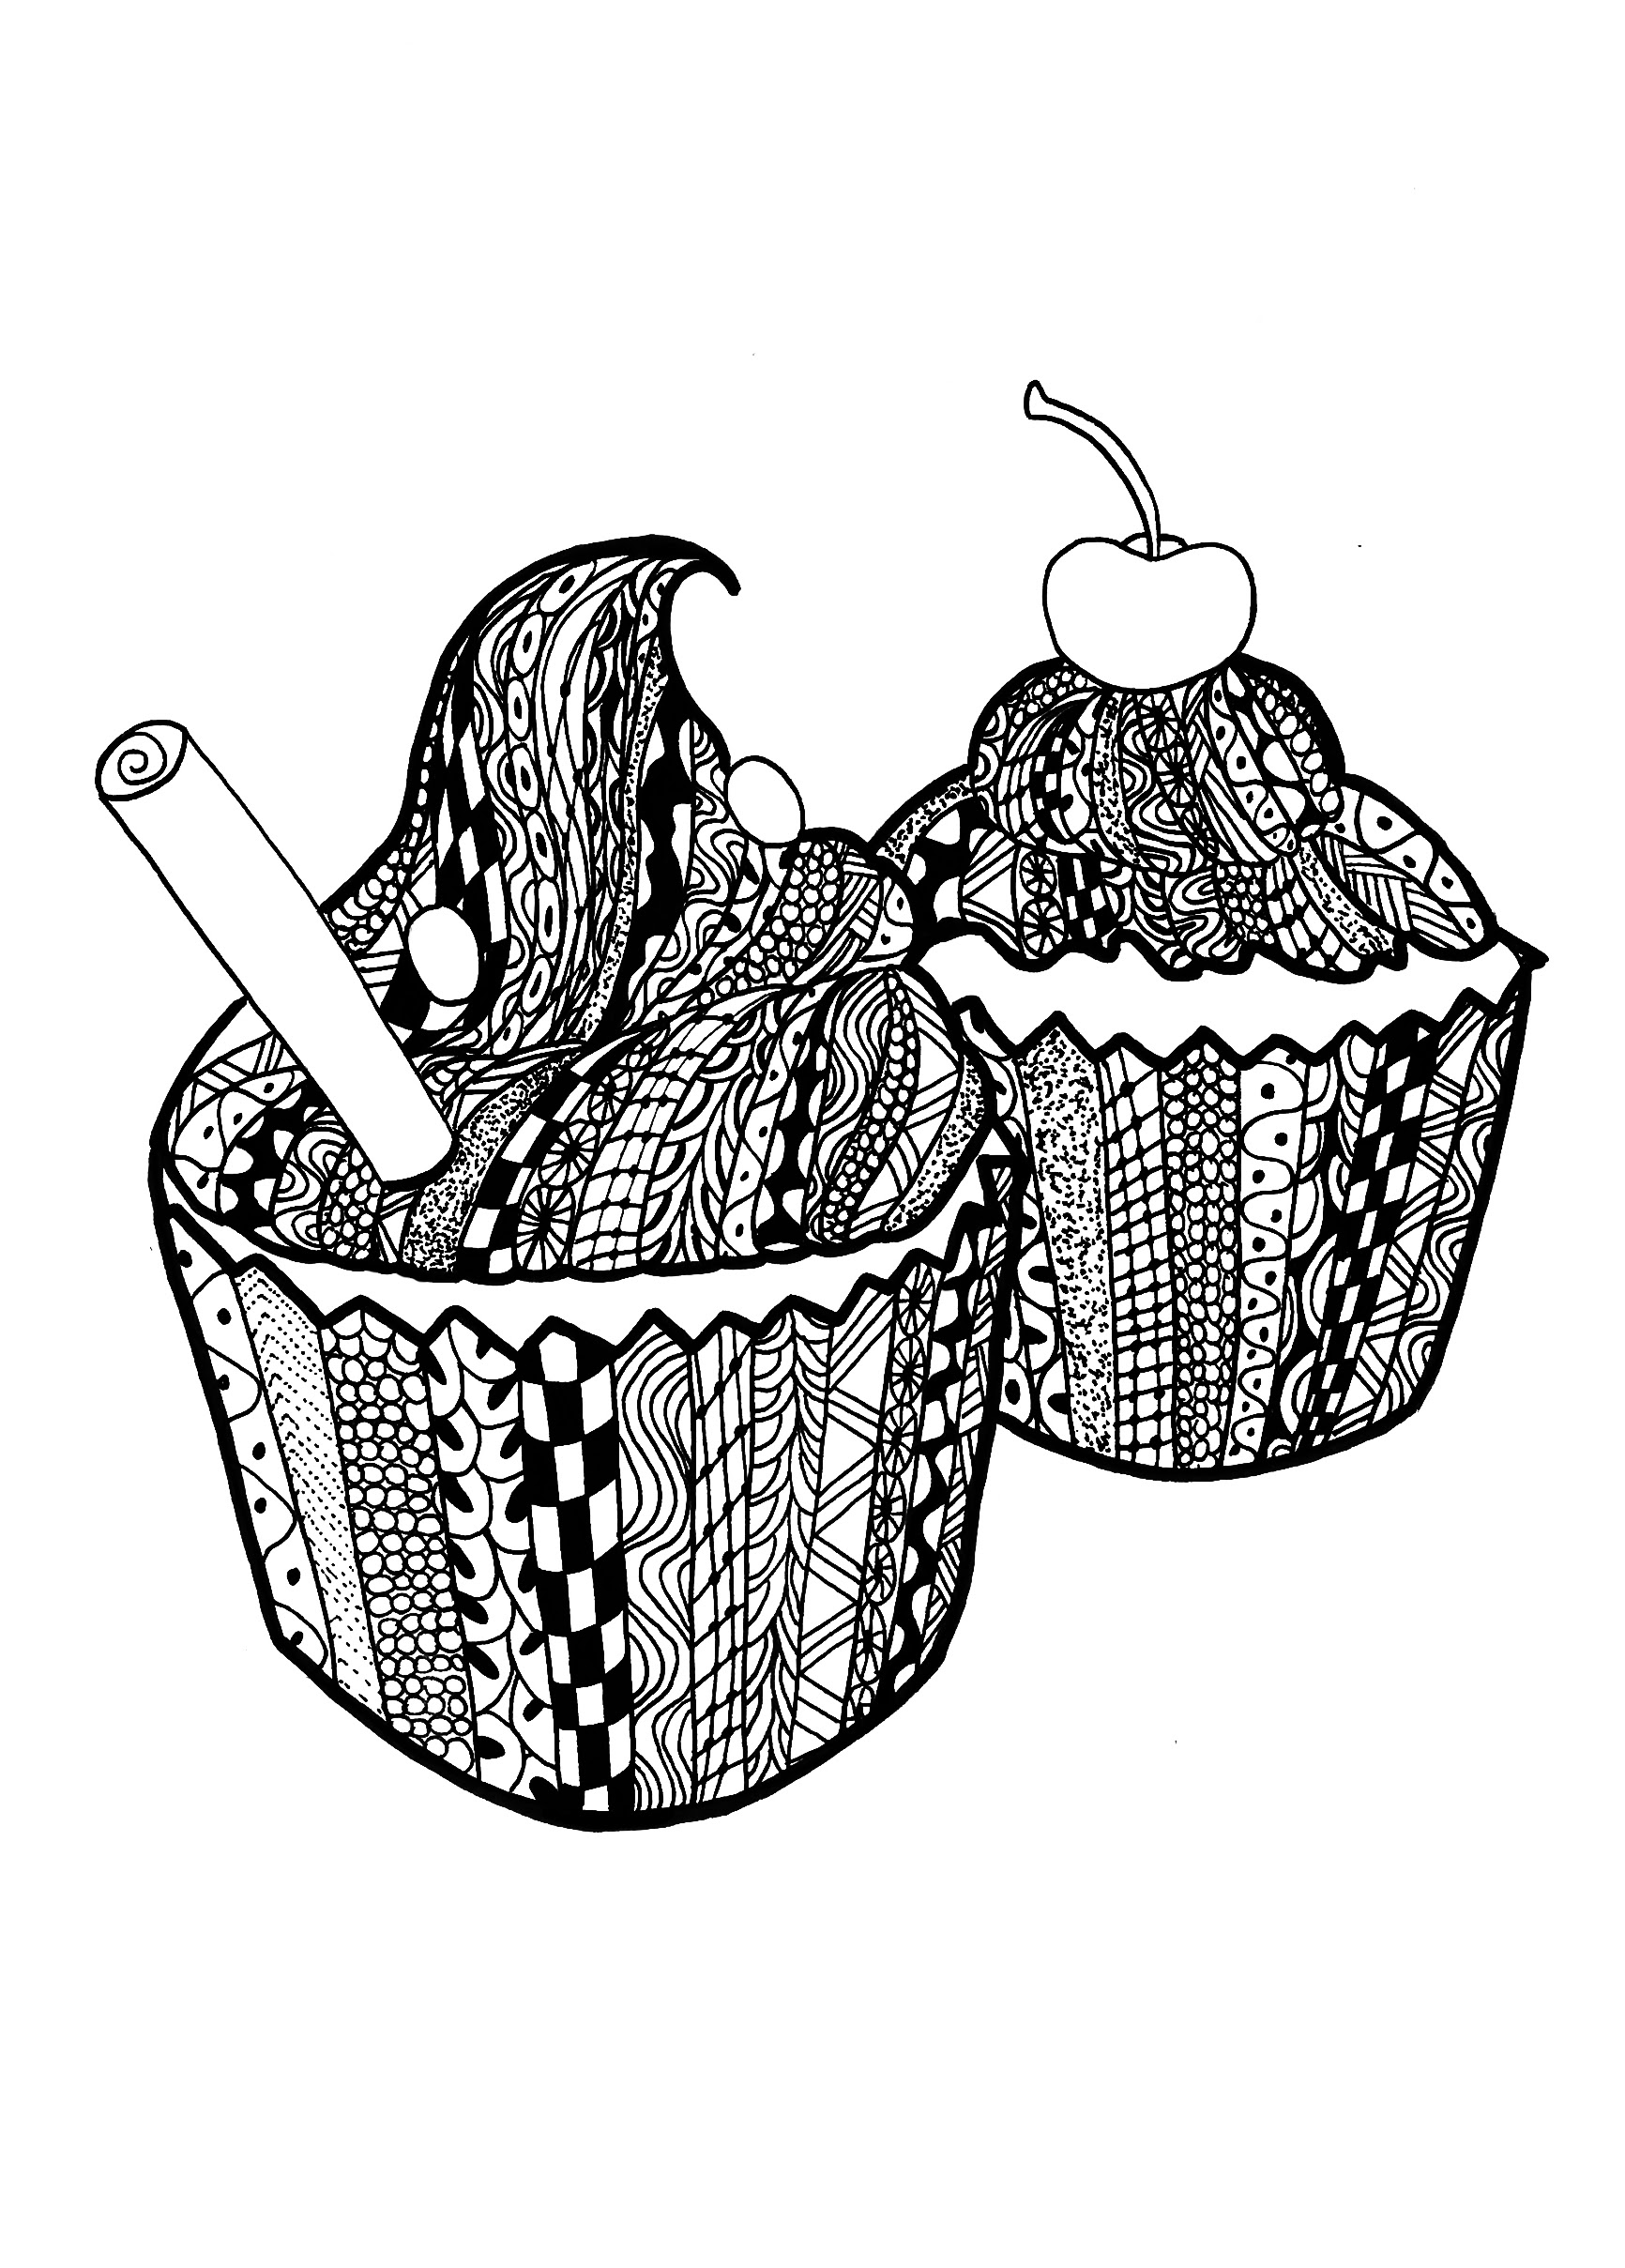 Coloring page adults zentangle cupcakes Celine